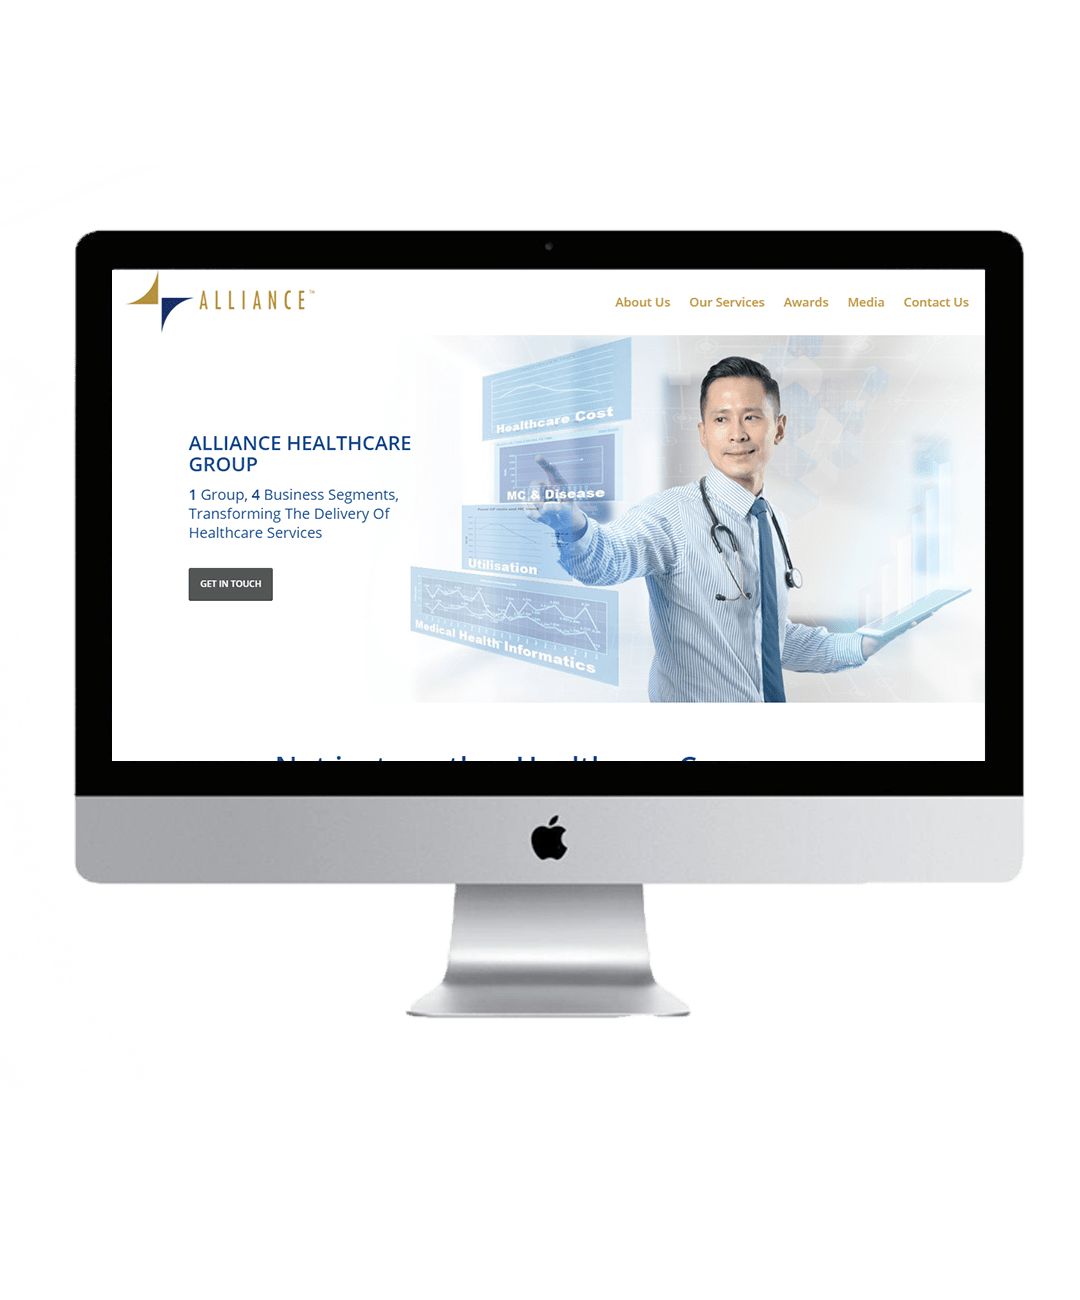 Alliance Healthcare website showcase 1